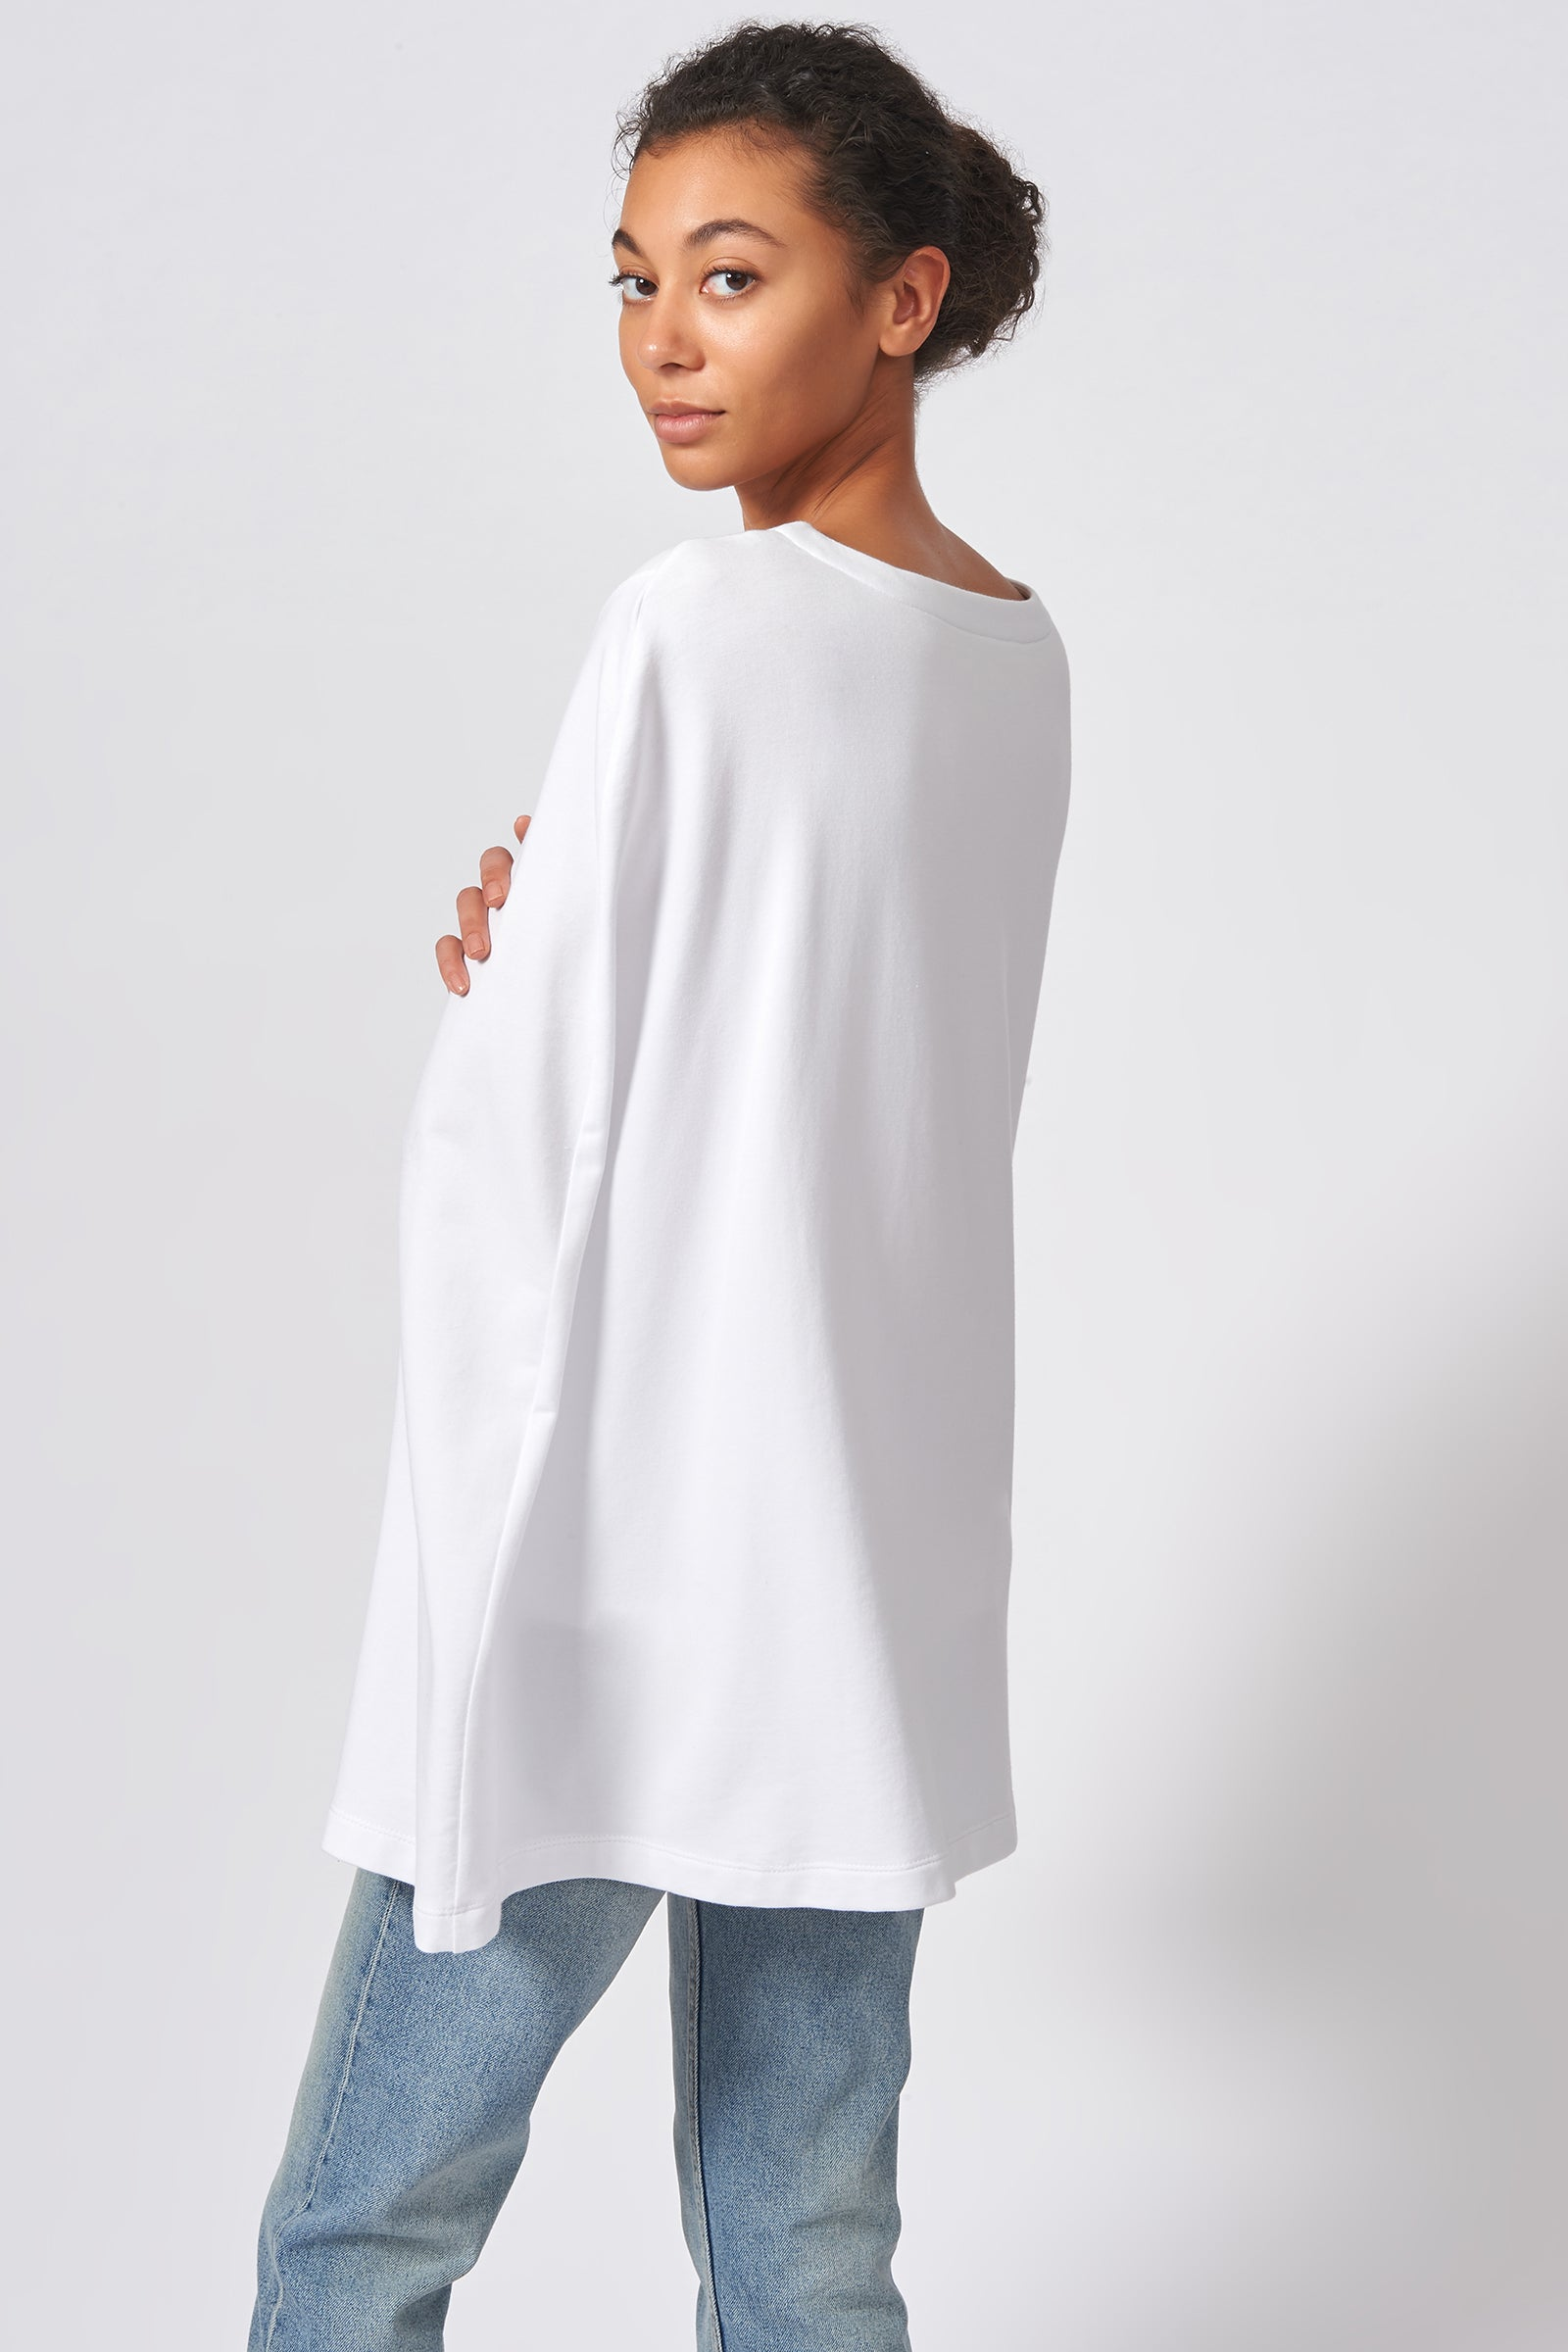 Kal Rieman Cape Sweatshirt in White on Model Front View